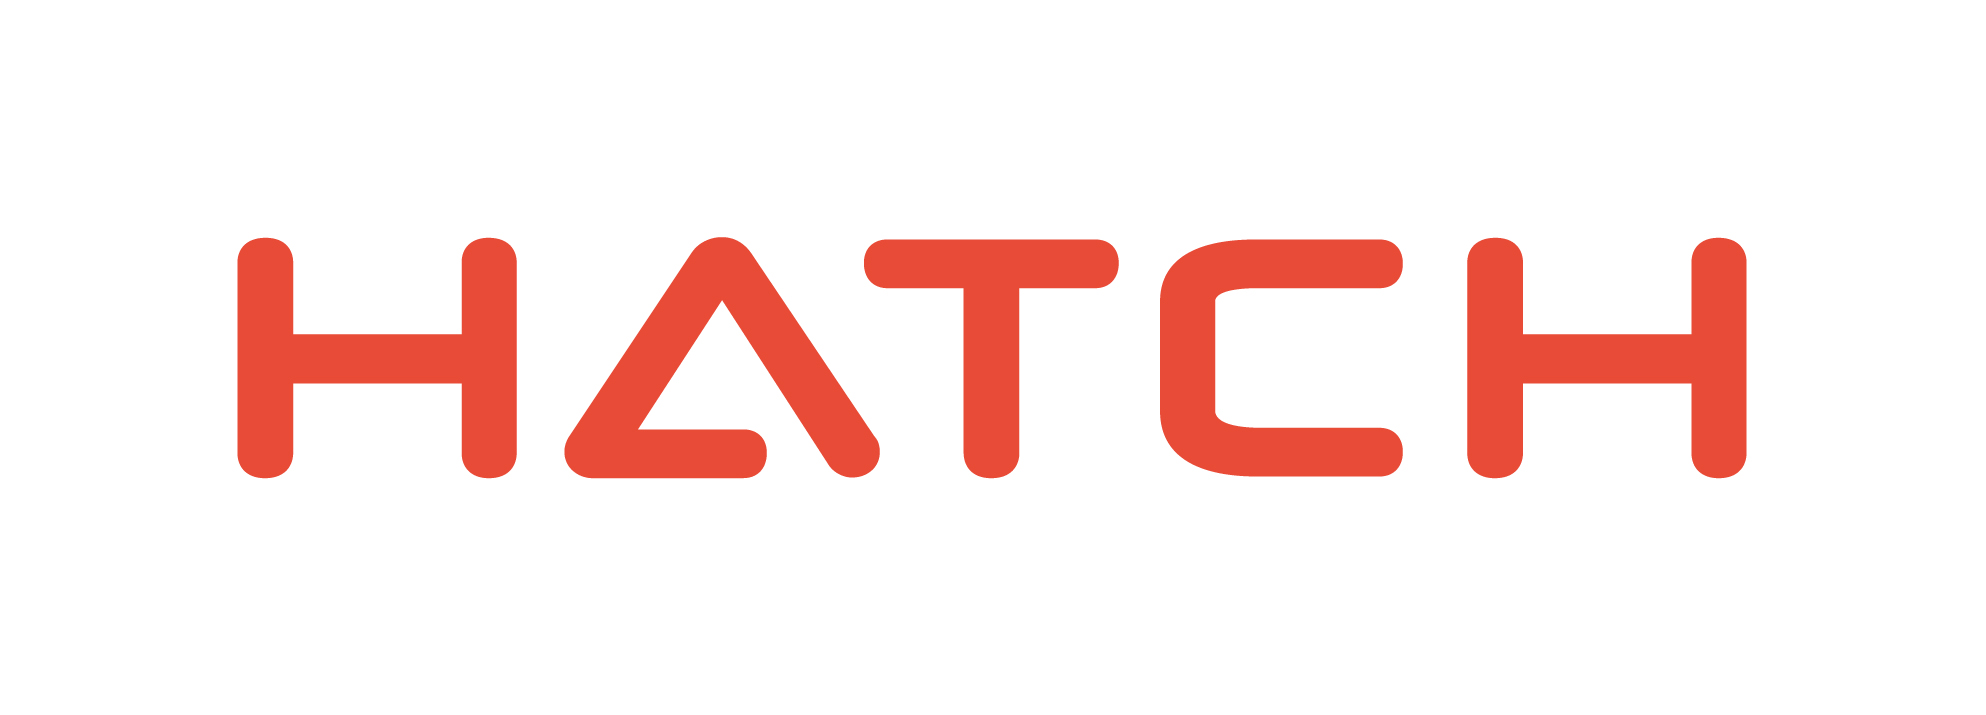 Hatch Ltd.